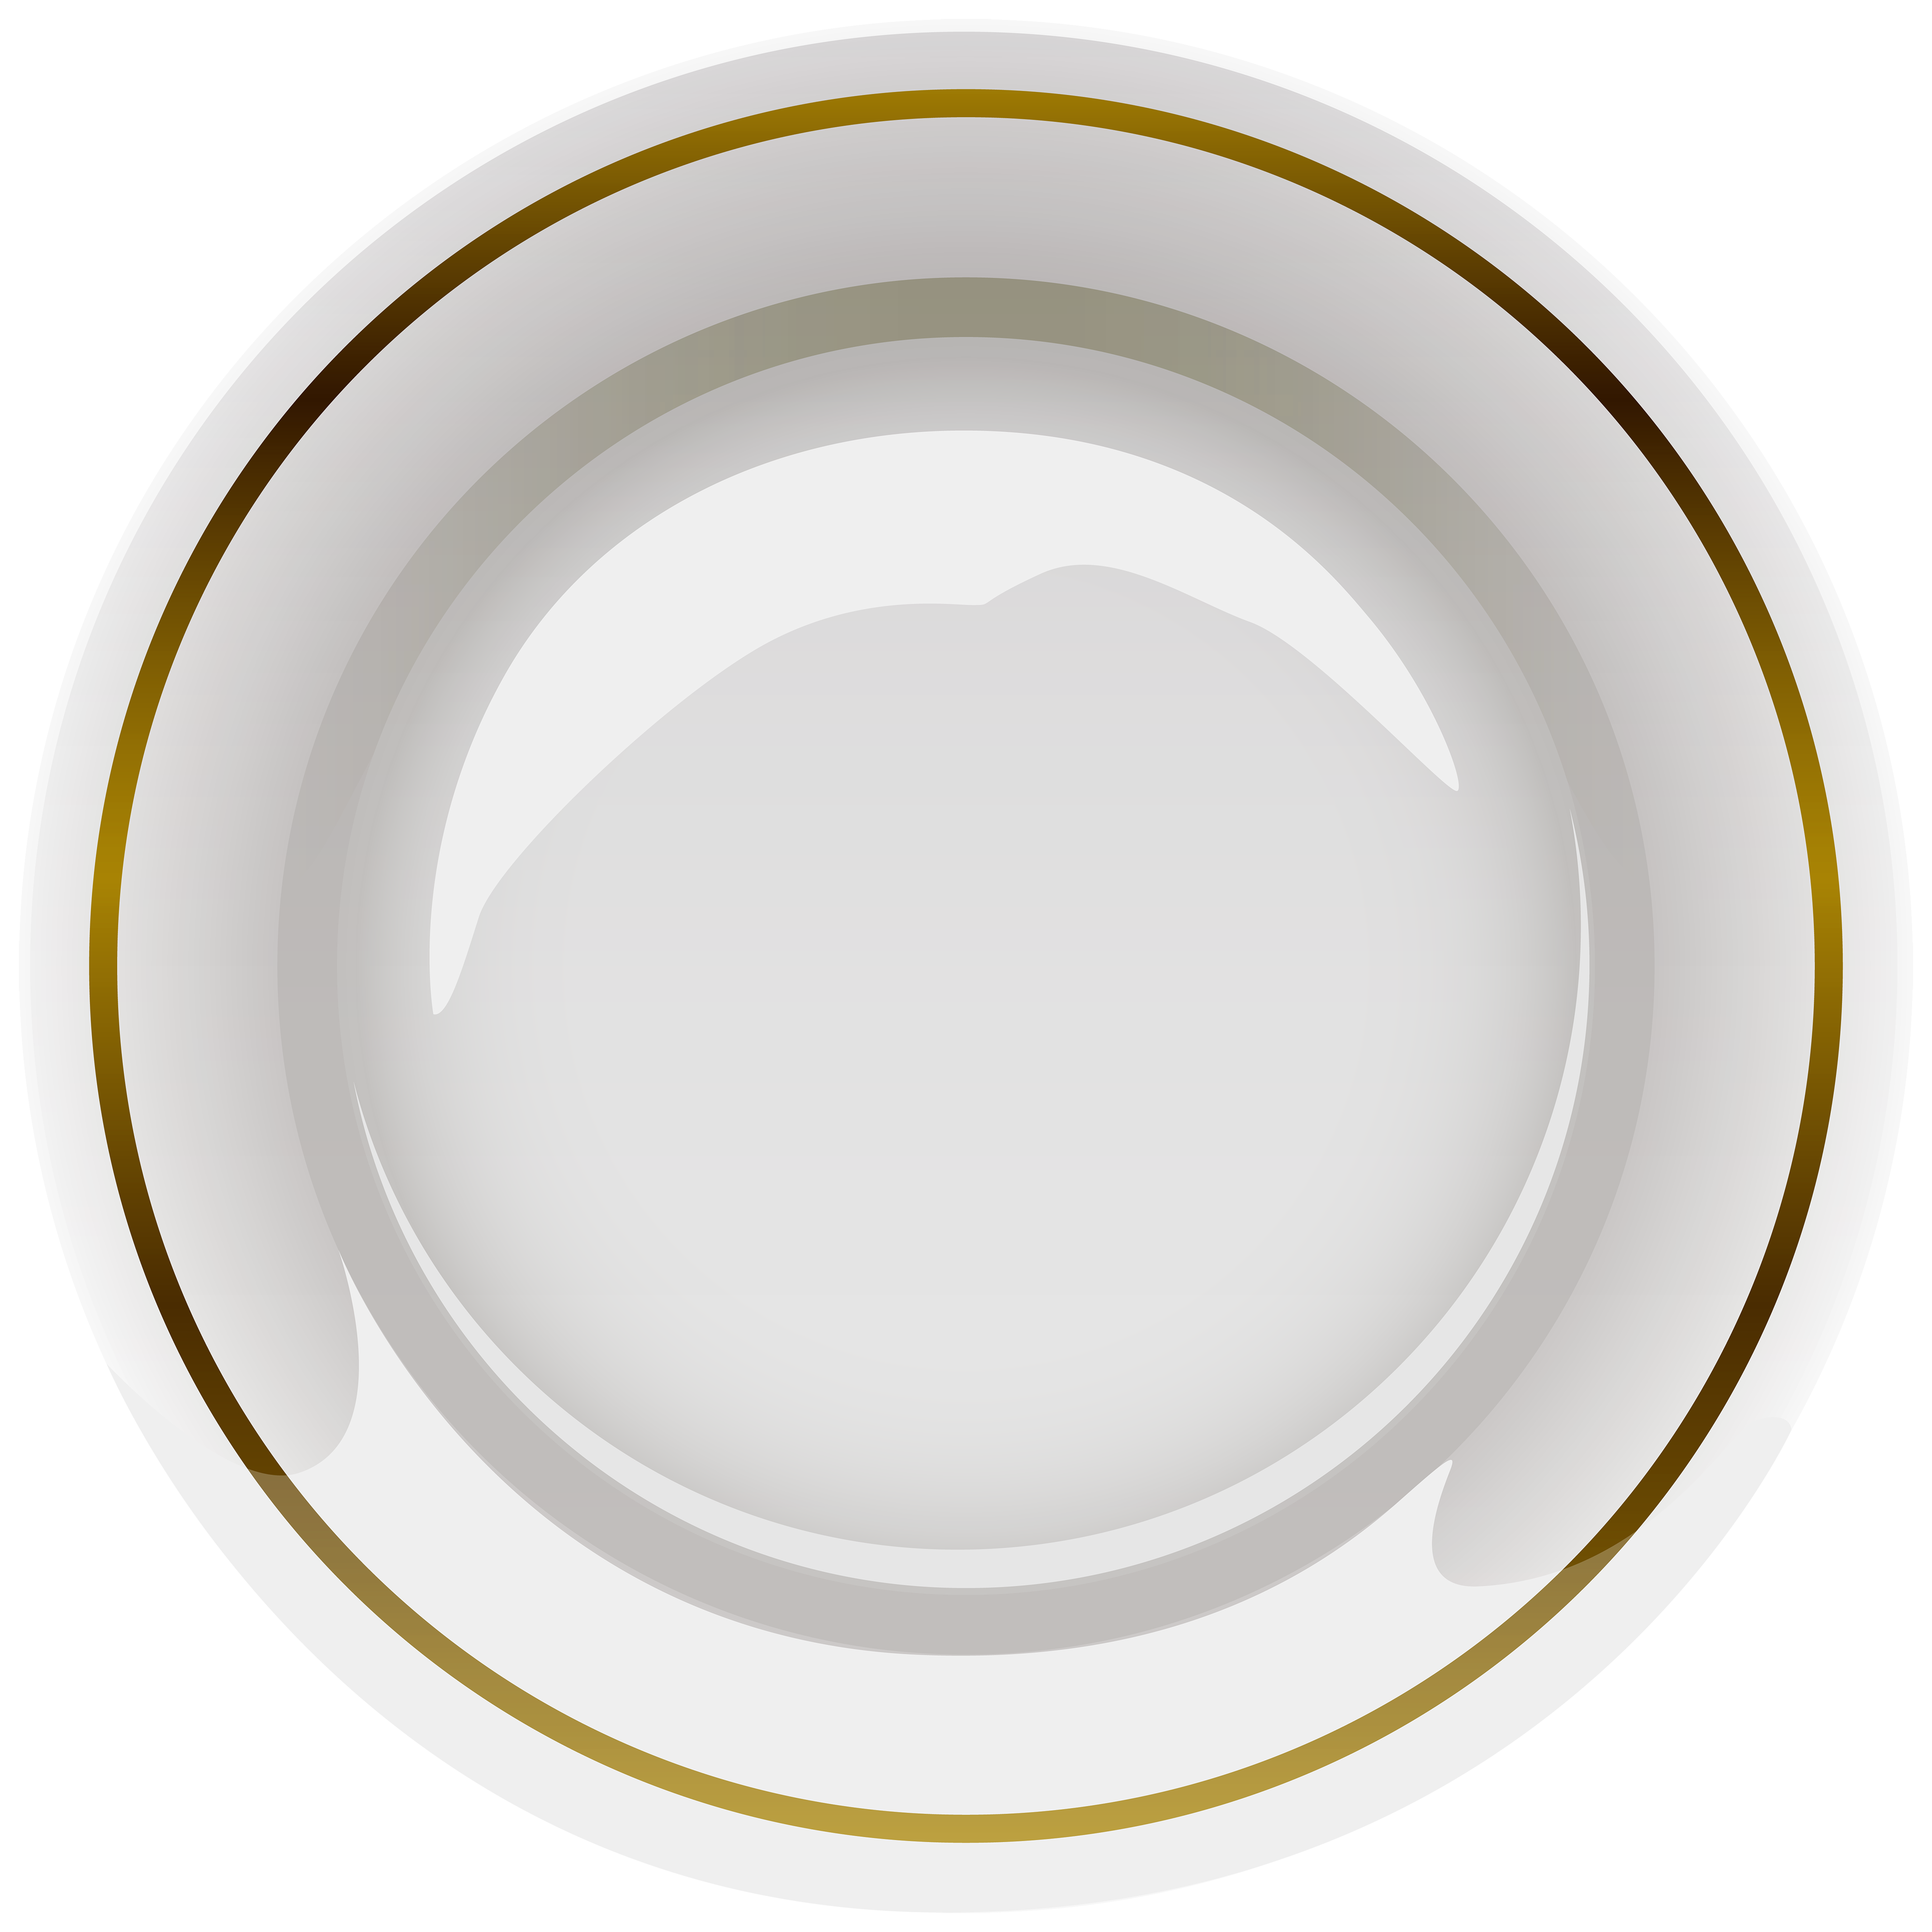 Elegant png best web. Plate clipart image library download